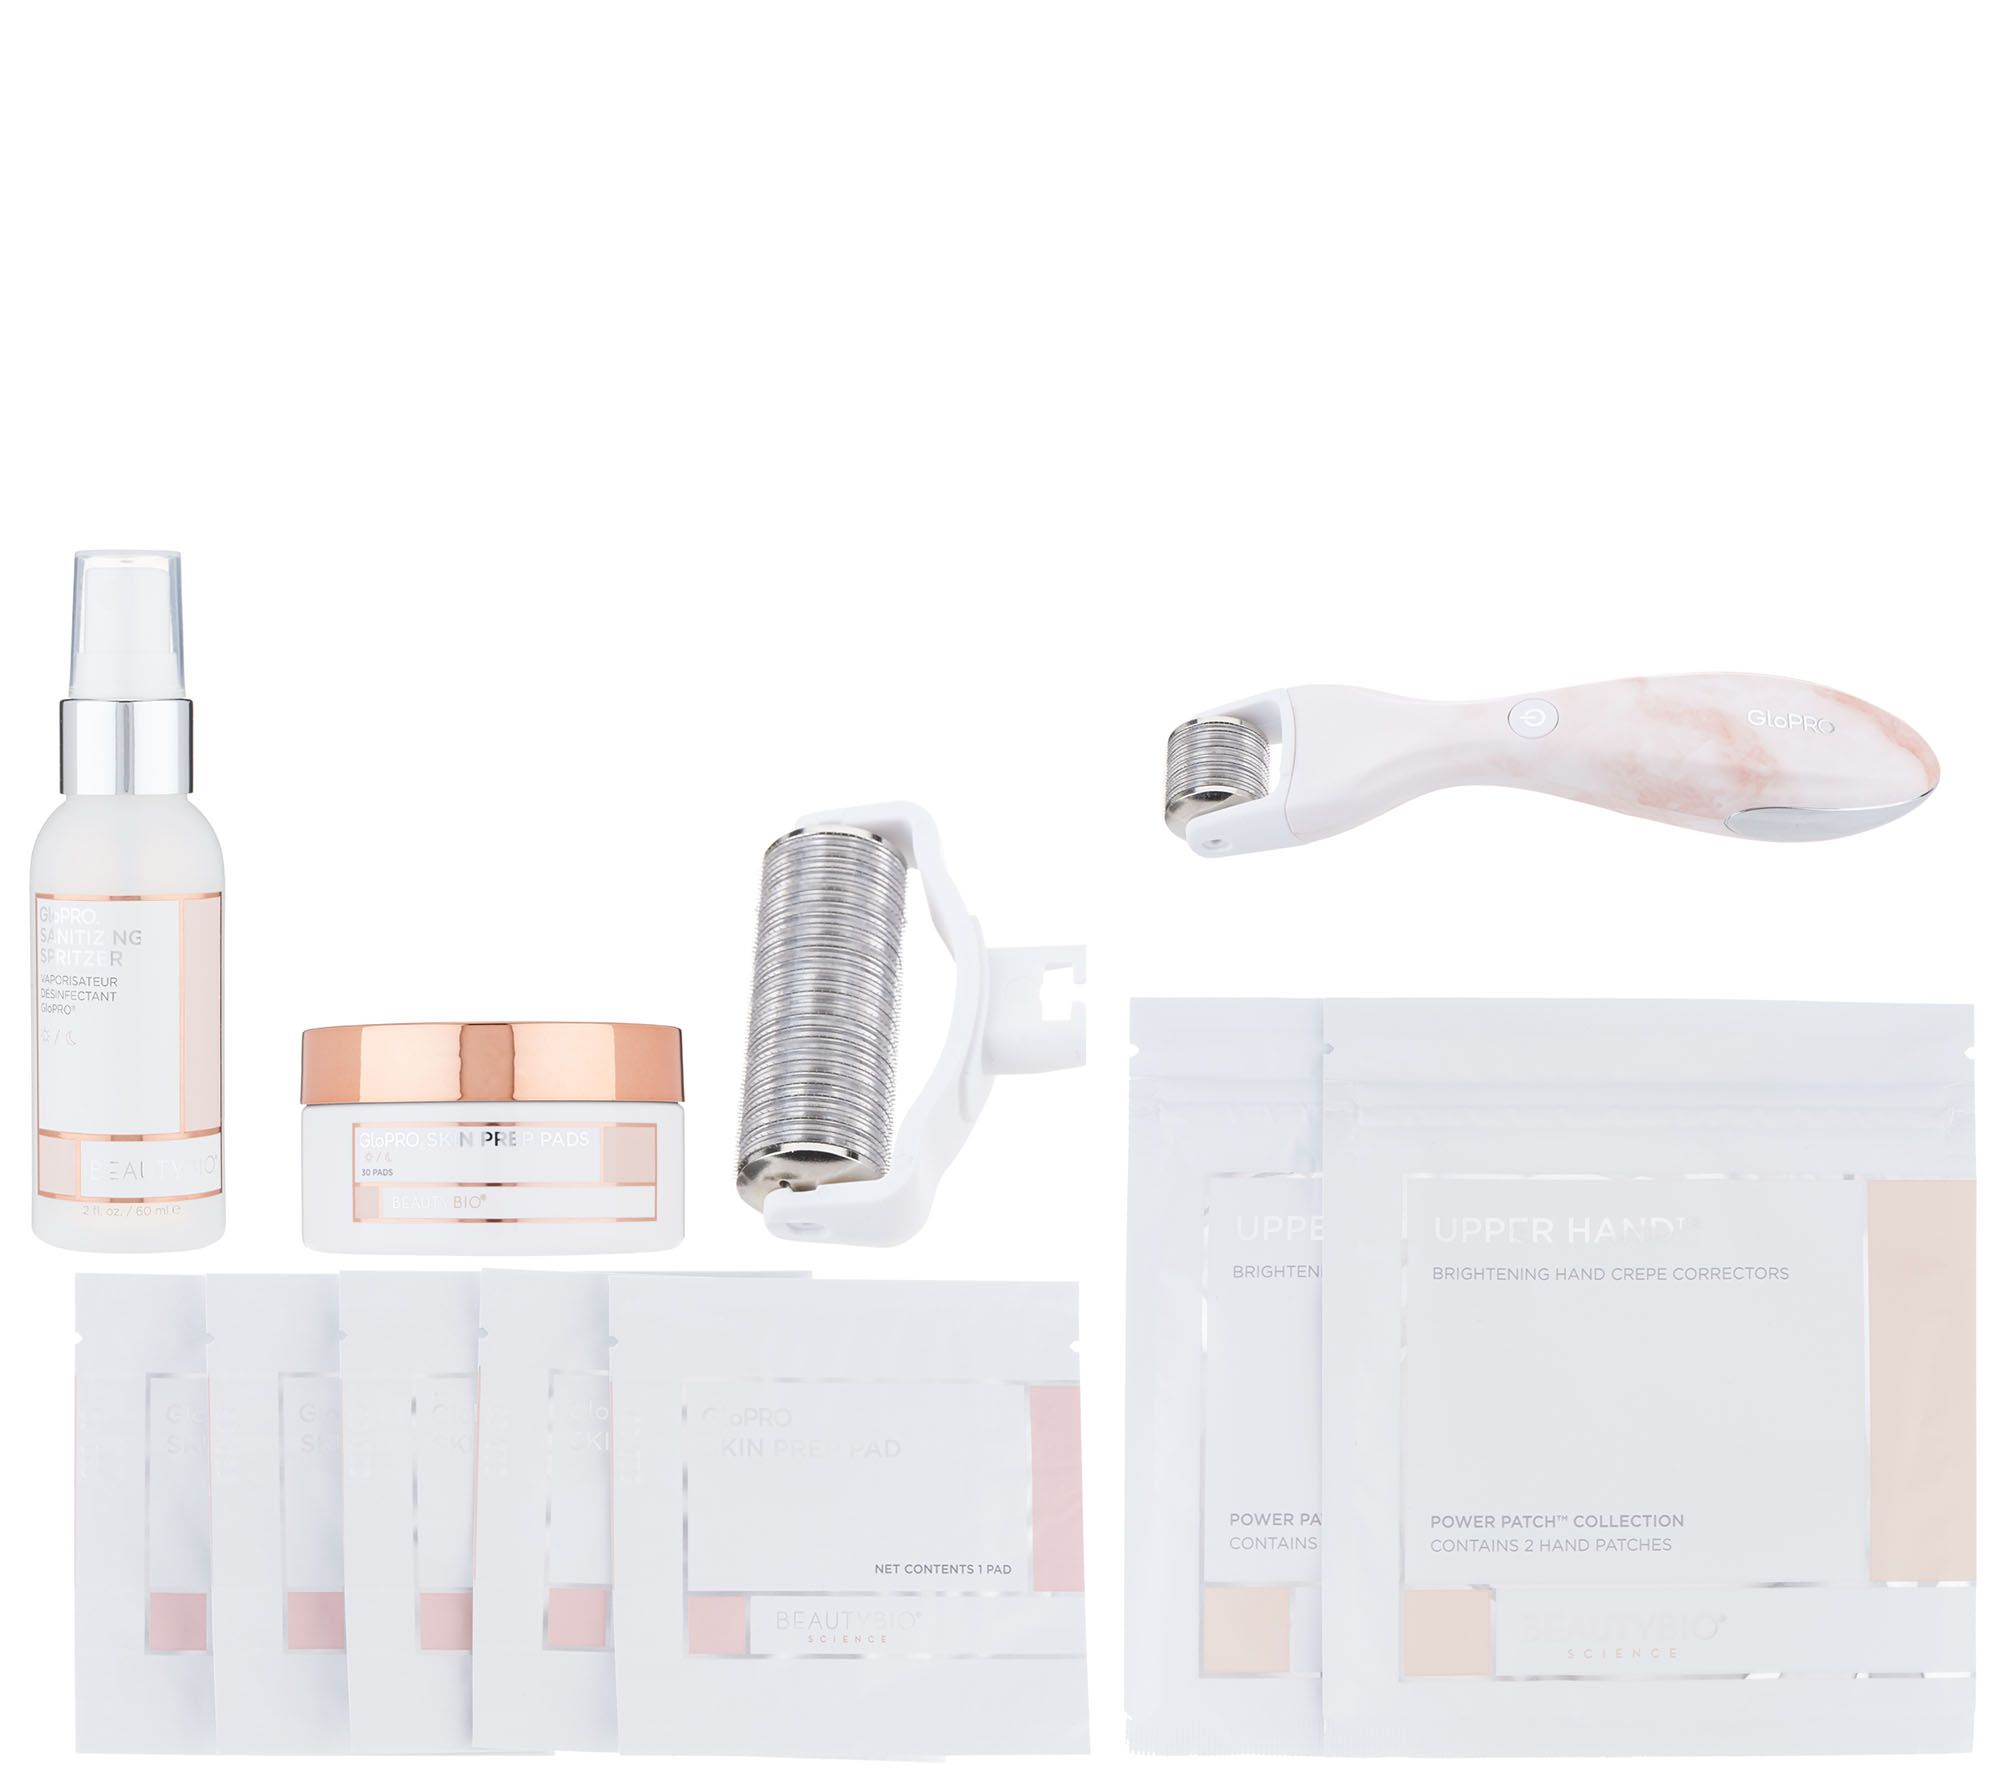 304fa07515b BeautyBio GloPRO Facial Tool w Body Attachment   Pads - Page 1 — QVC.com